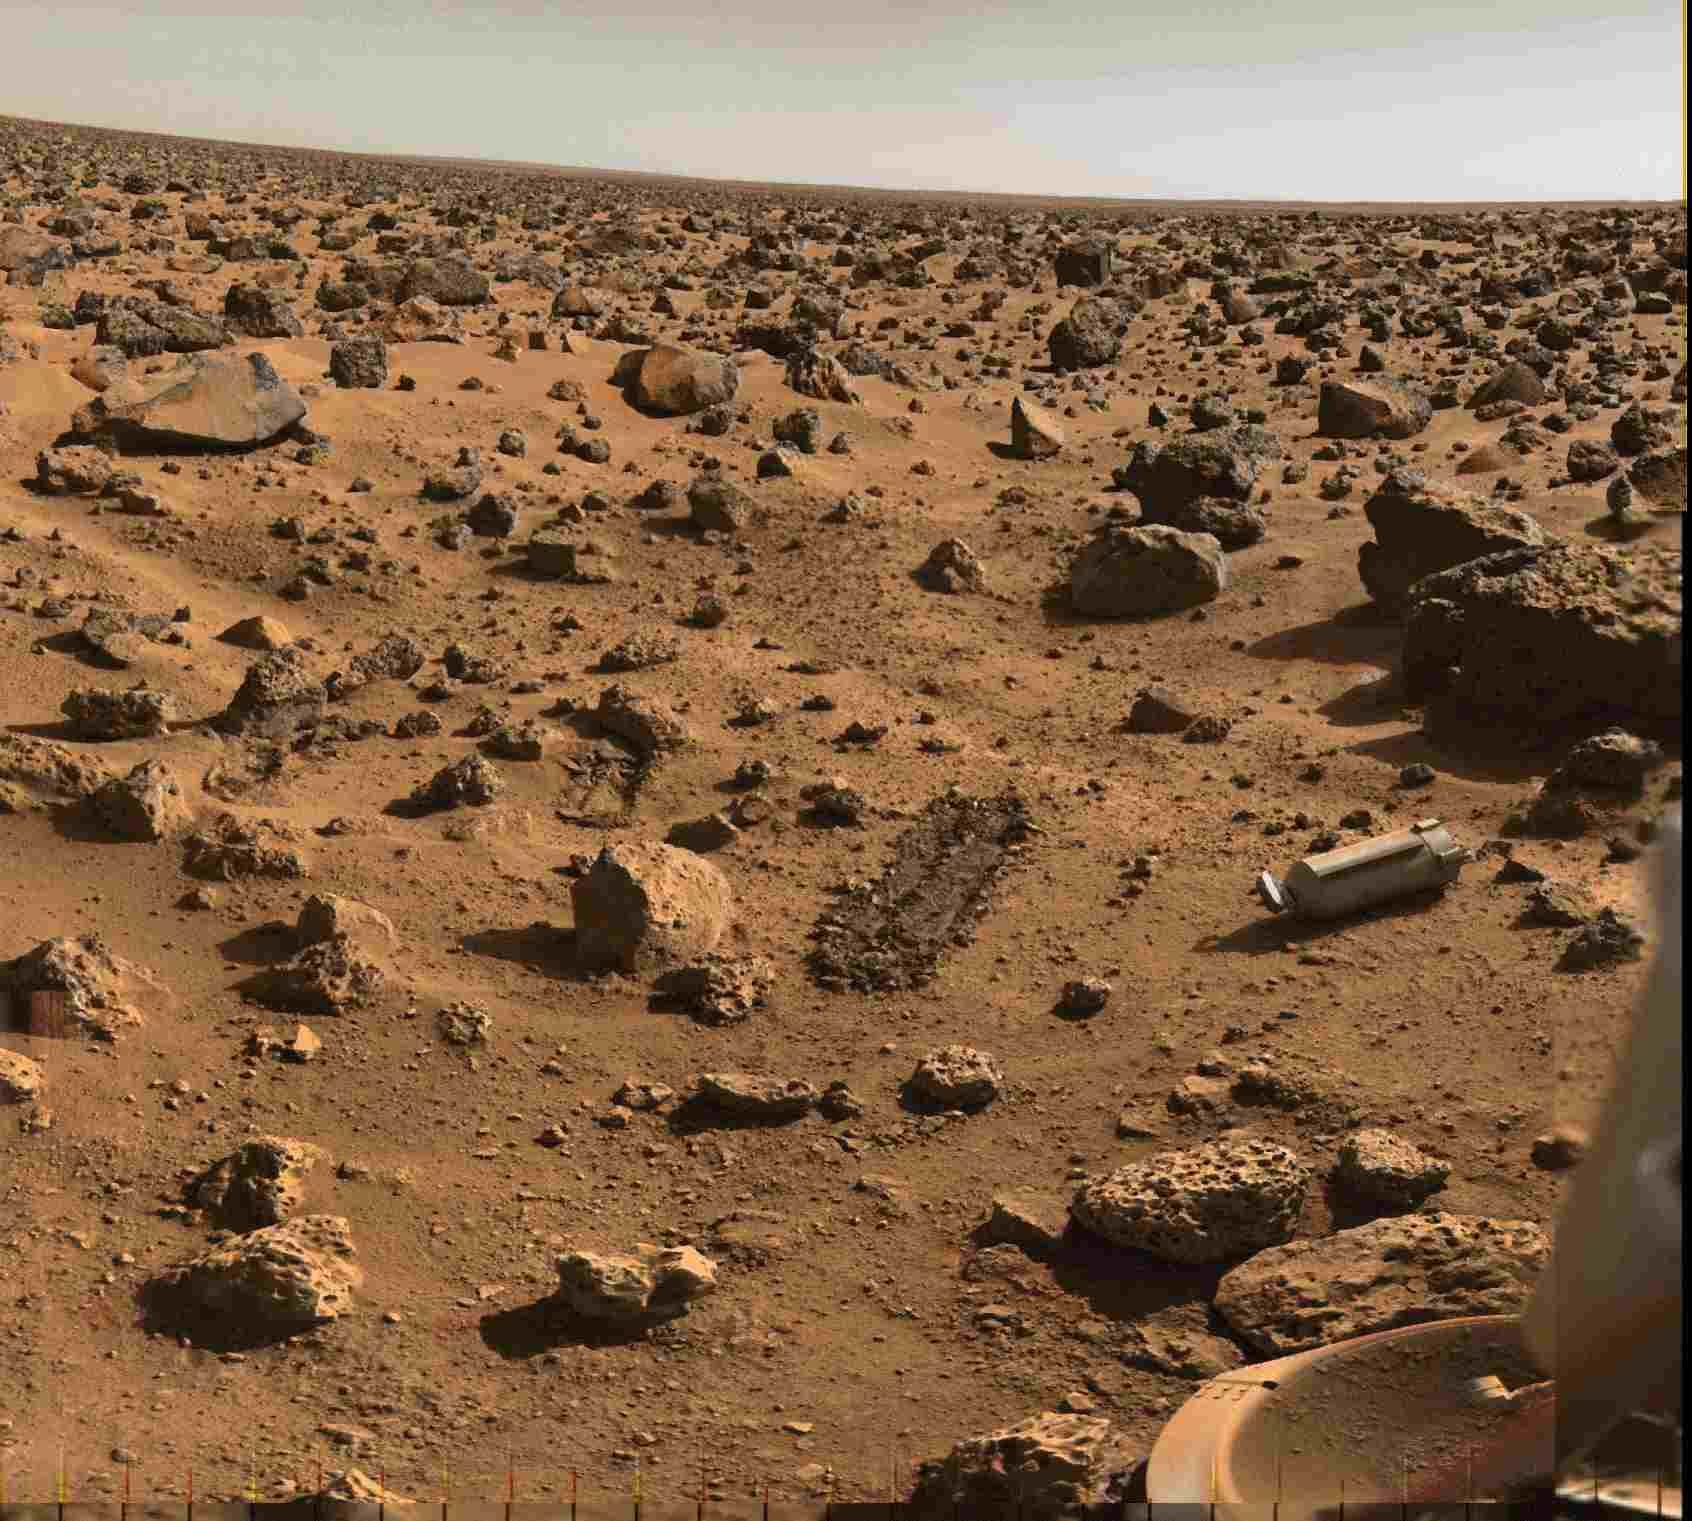 Pin By Sheryl Neal On Cosmos Mars Surface Space And Astronomy Mars Facts